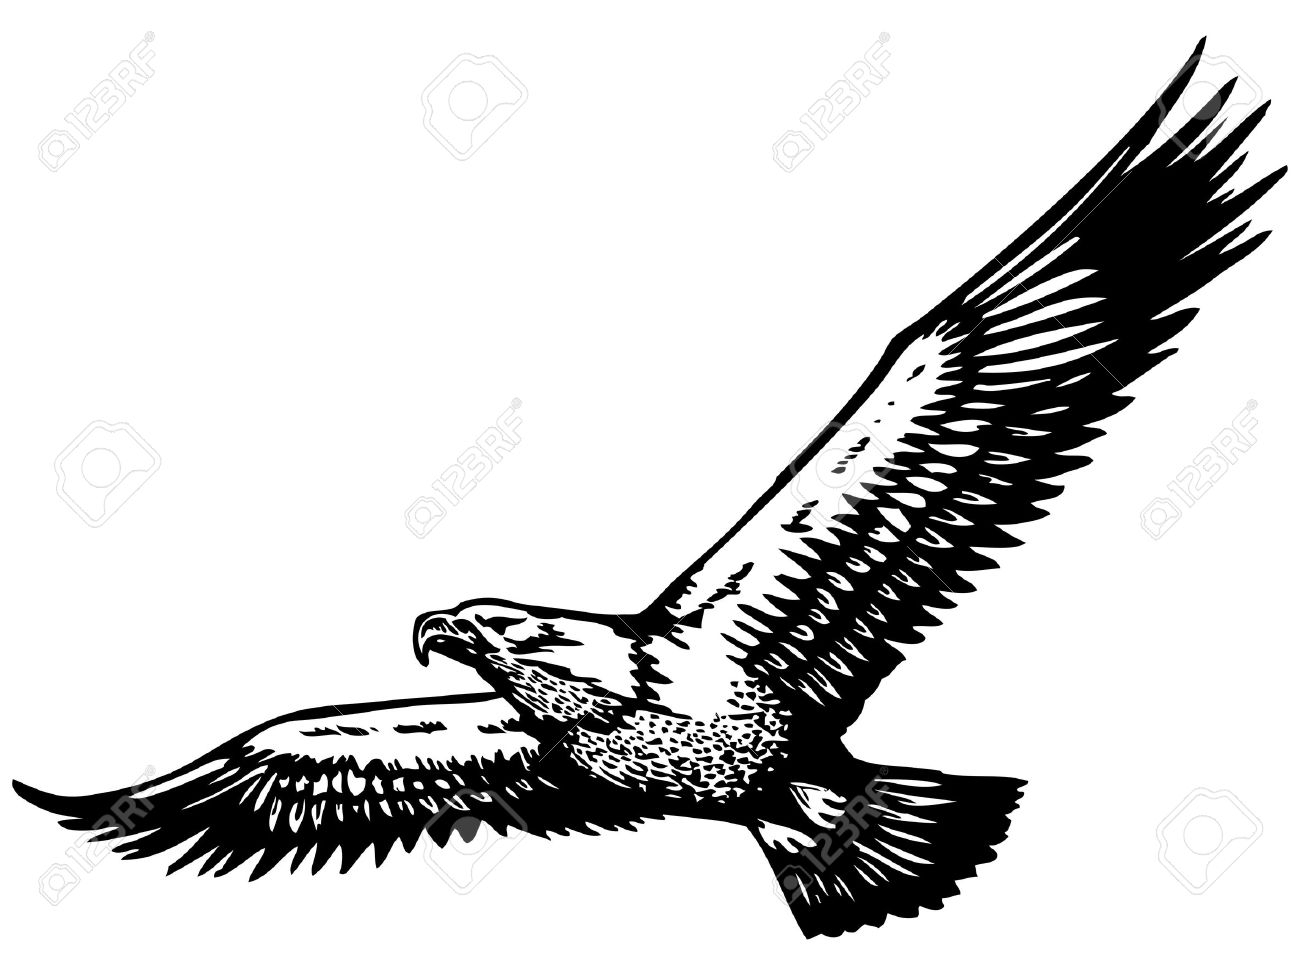 Eagle flying clipart black and white clip free library Eagle Flying Drawing | Free download best Eagle Flying Drawing on ... clip free library